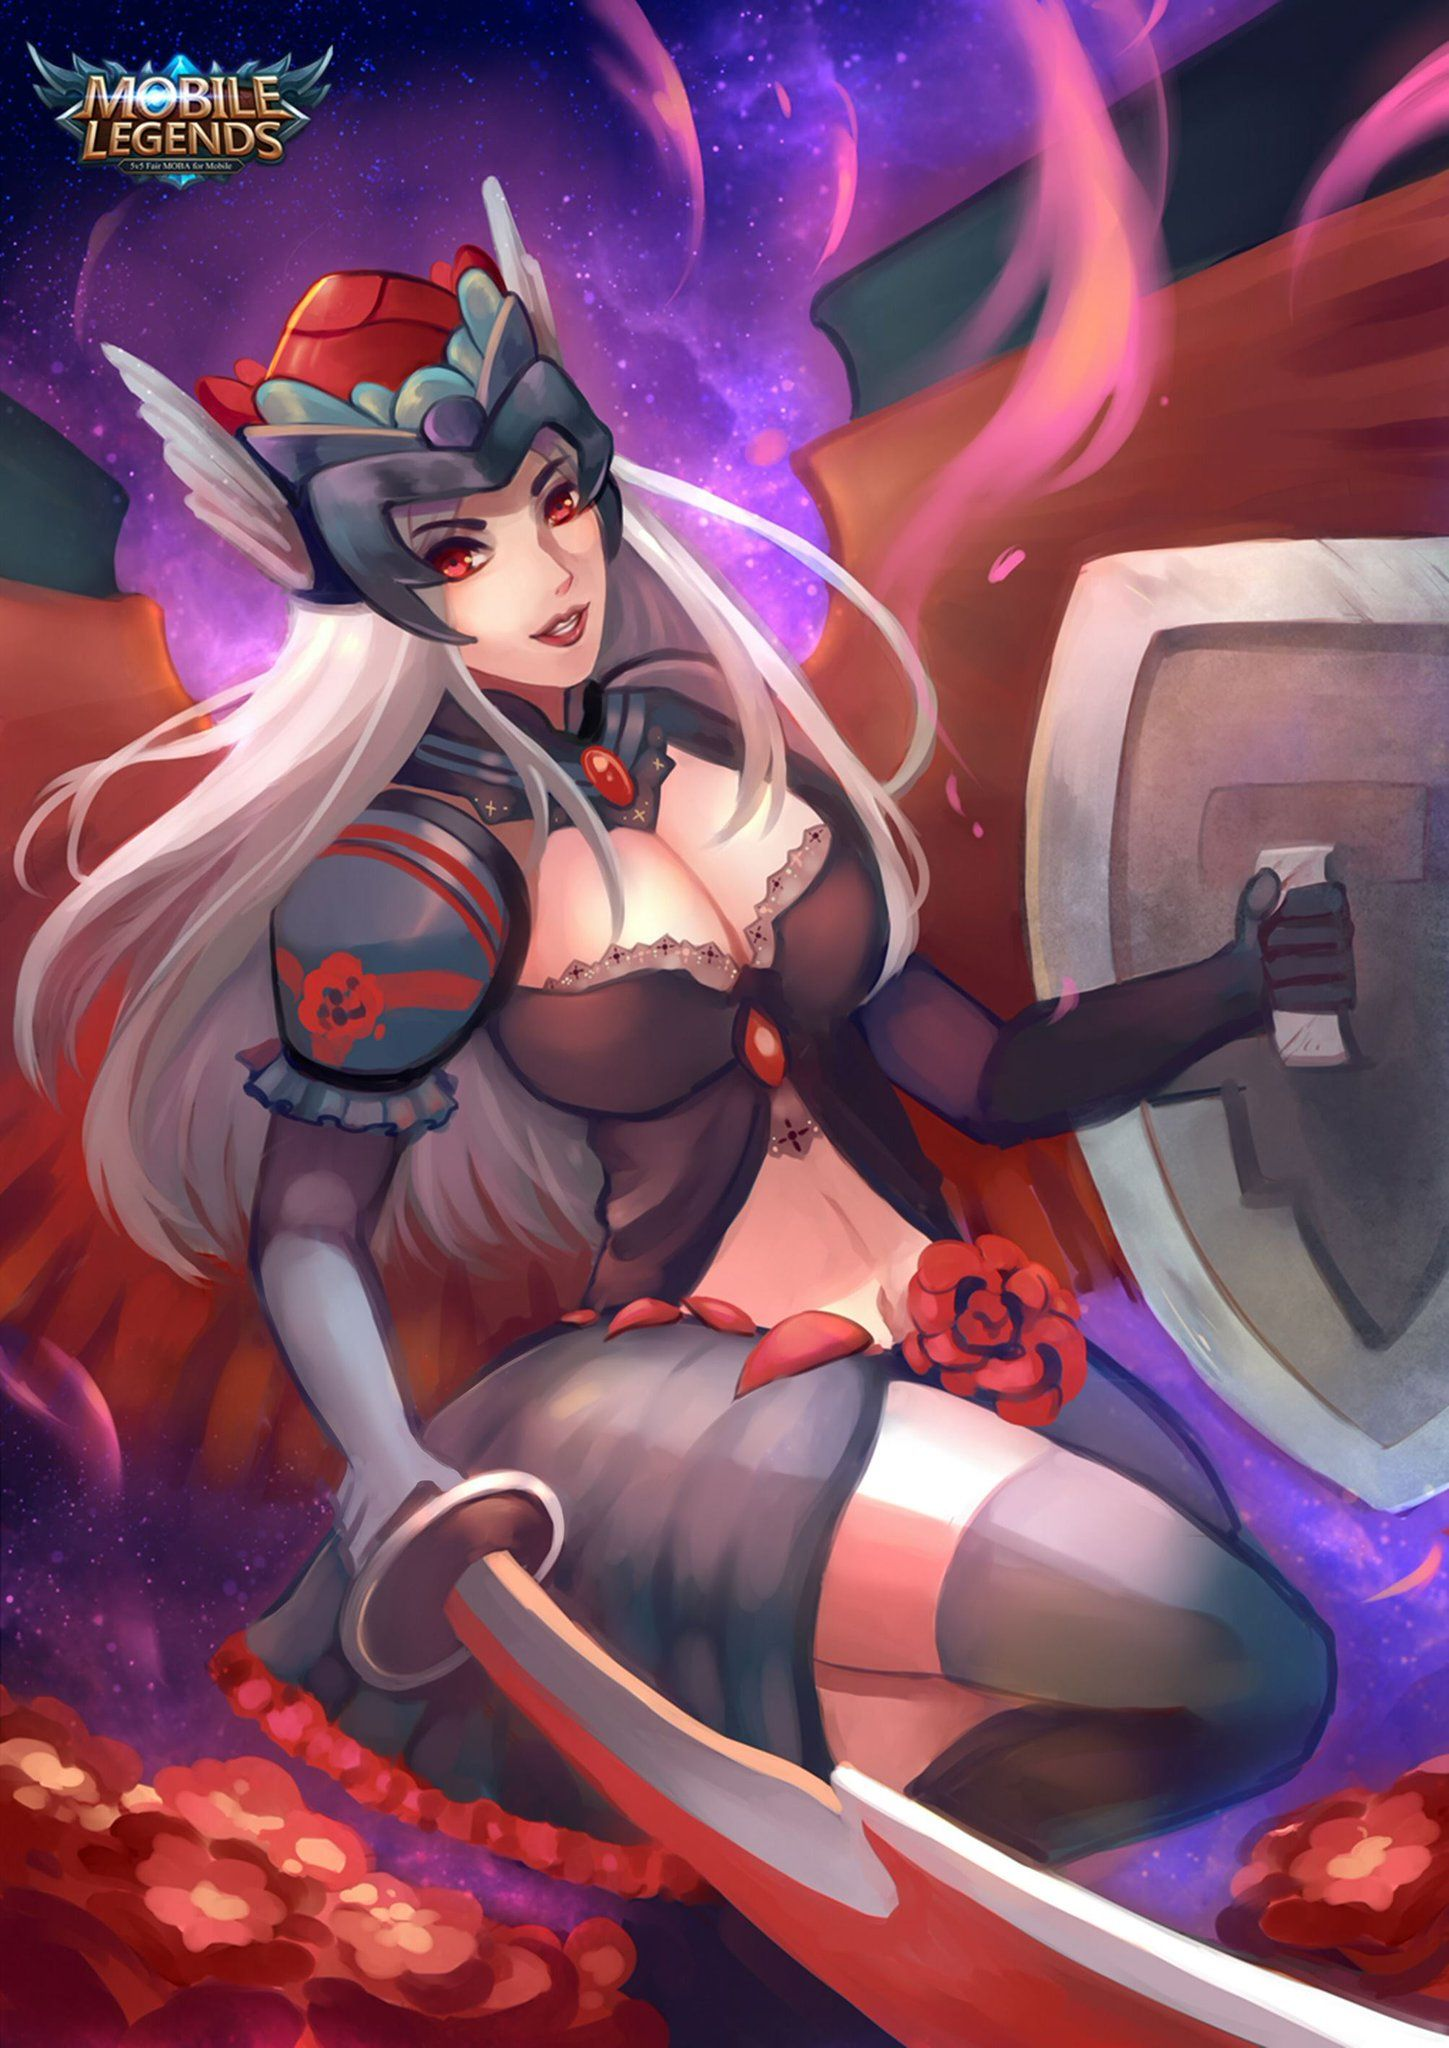 Wallpaper Mobile Legends Freya Dark Rose